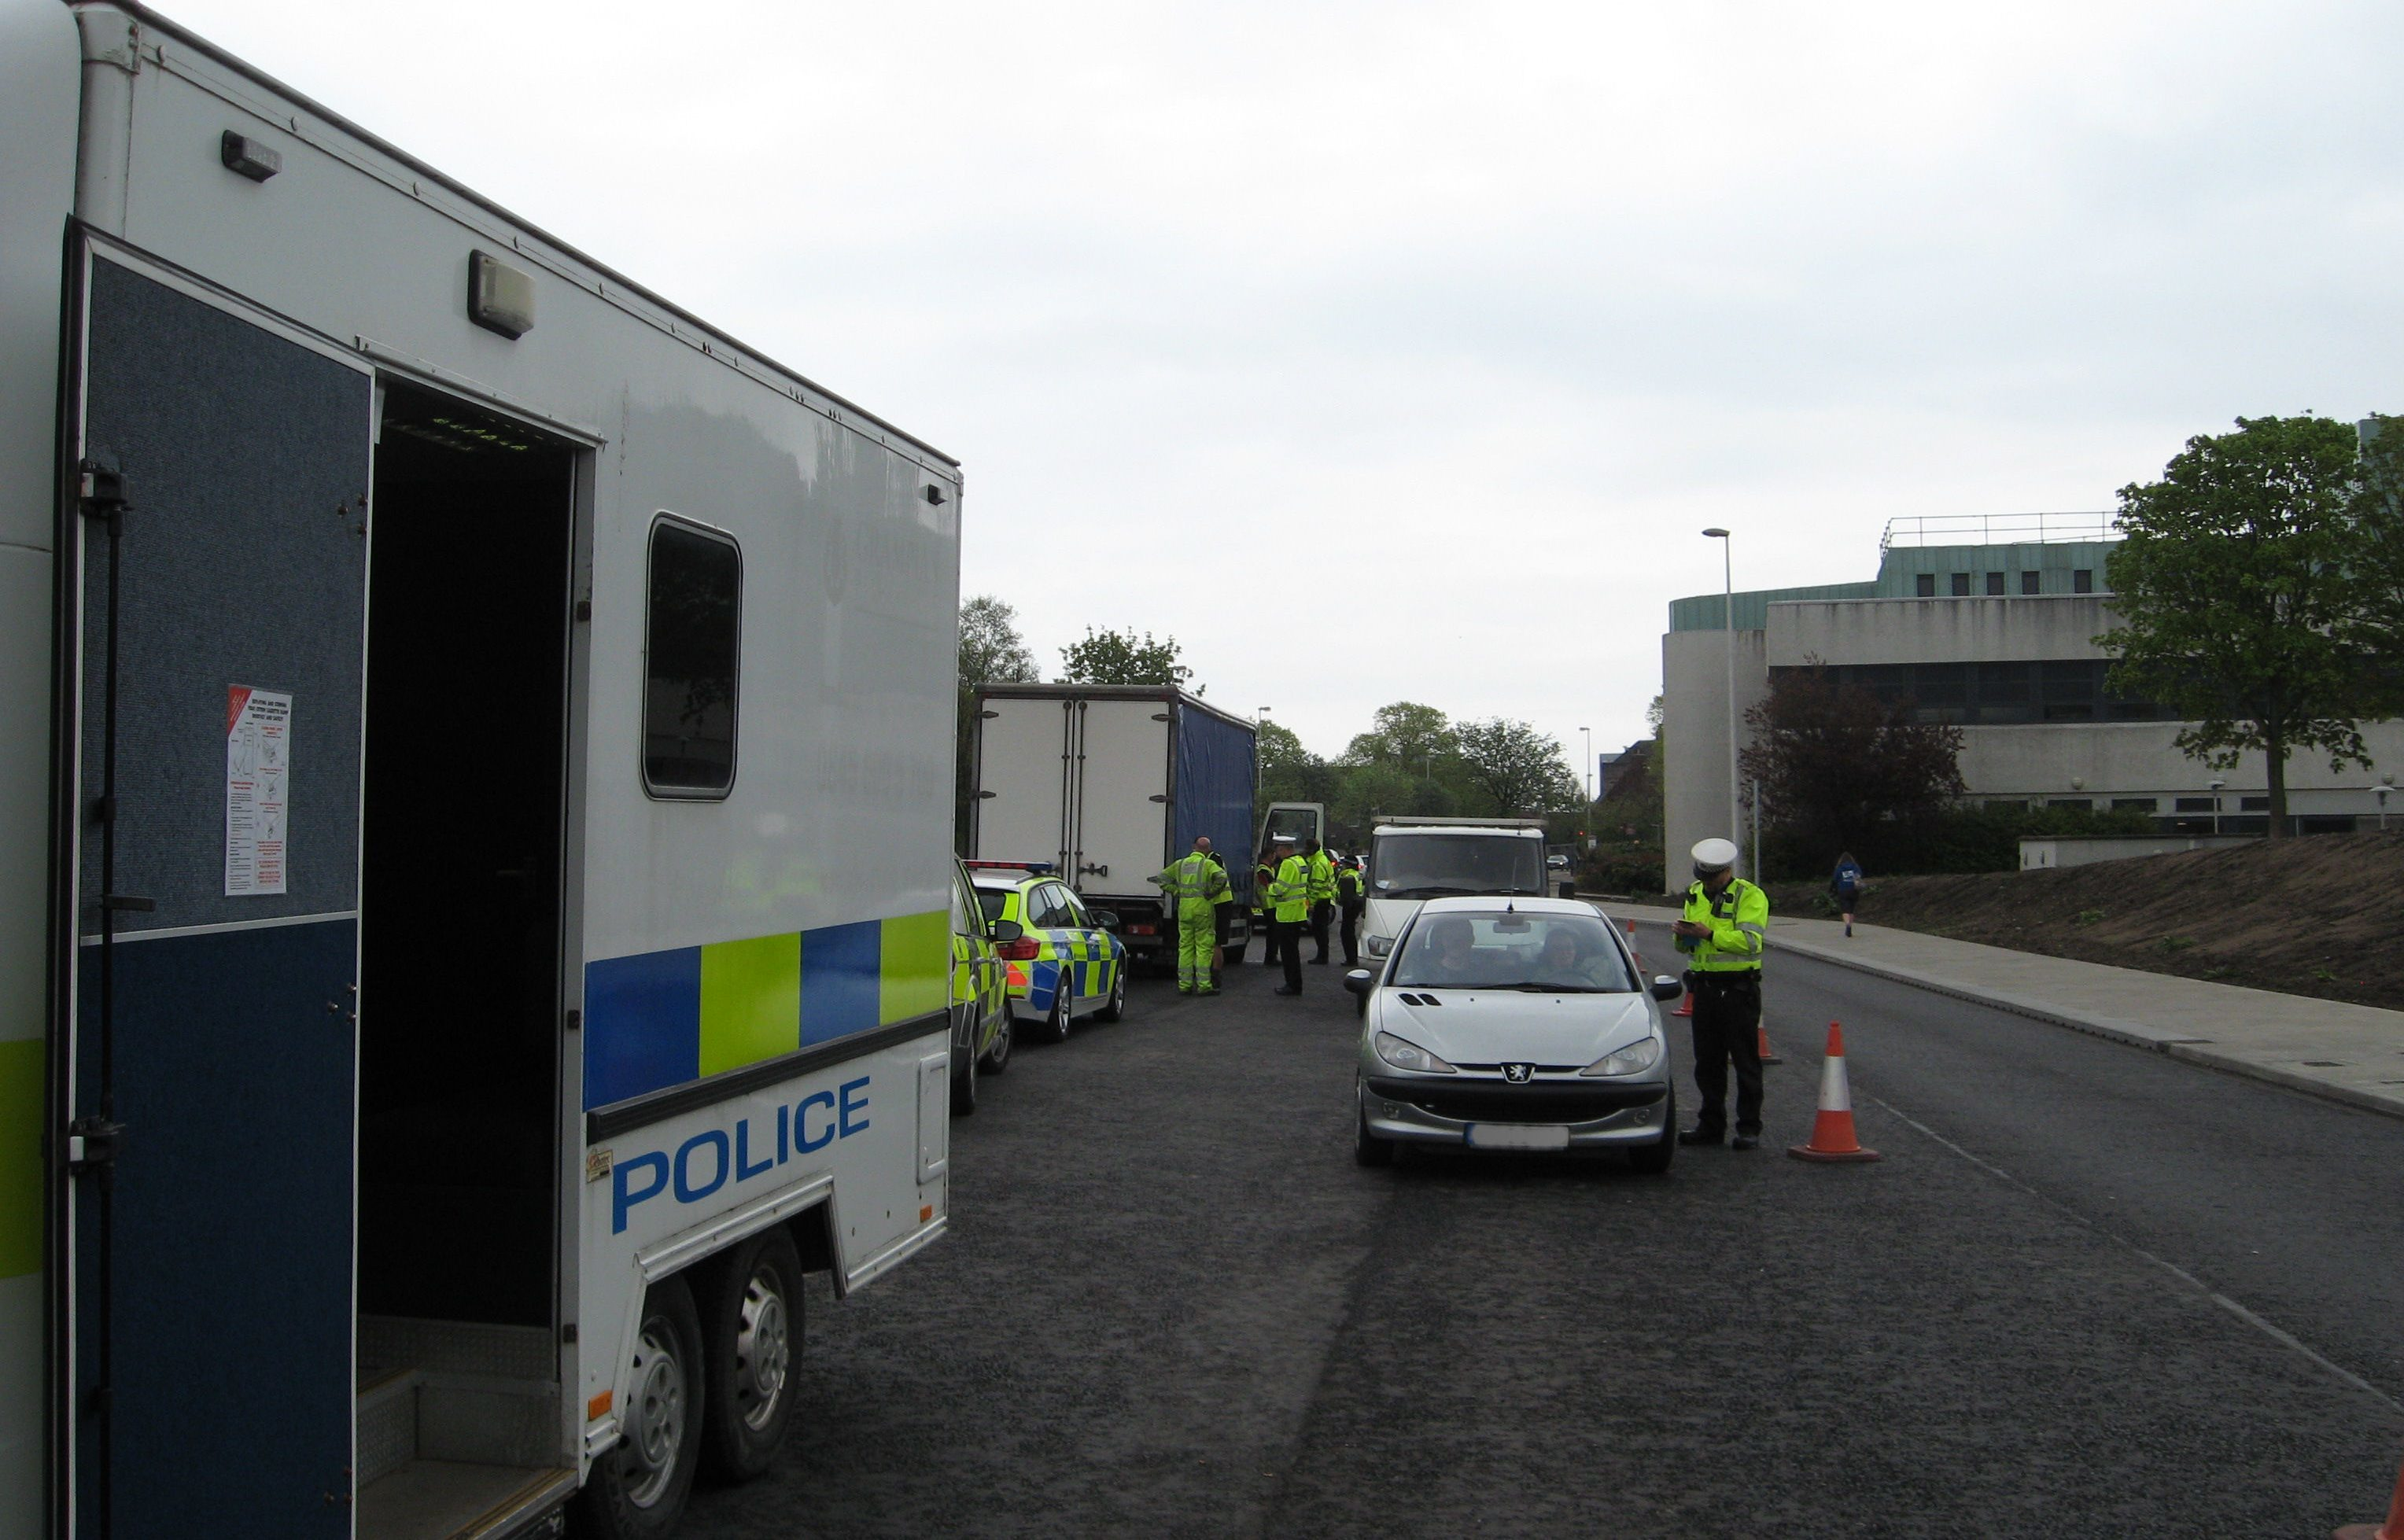 The operation took place in Aberdeen earlier this month.